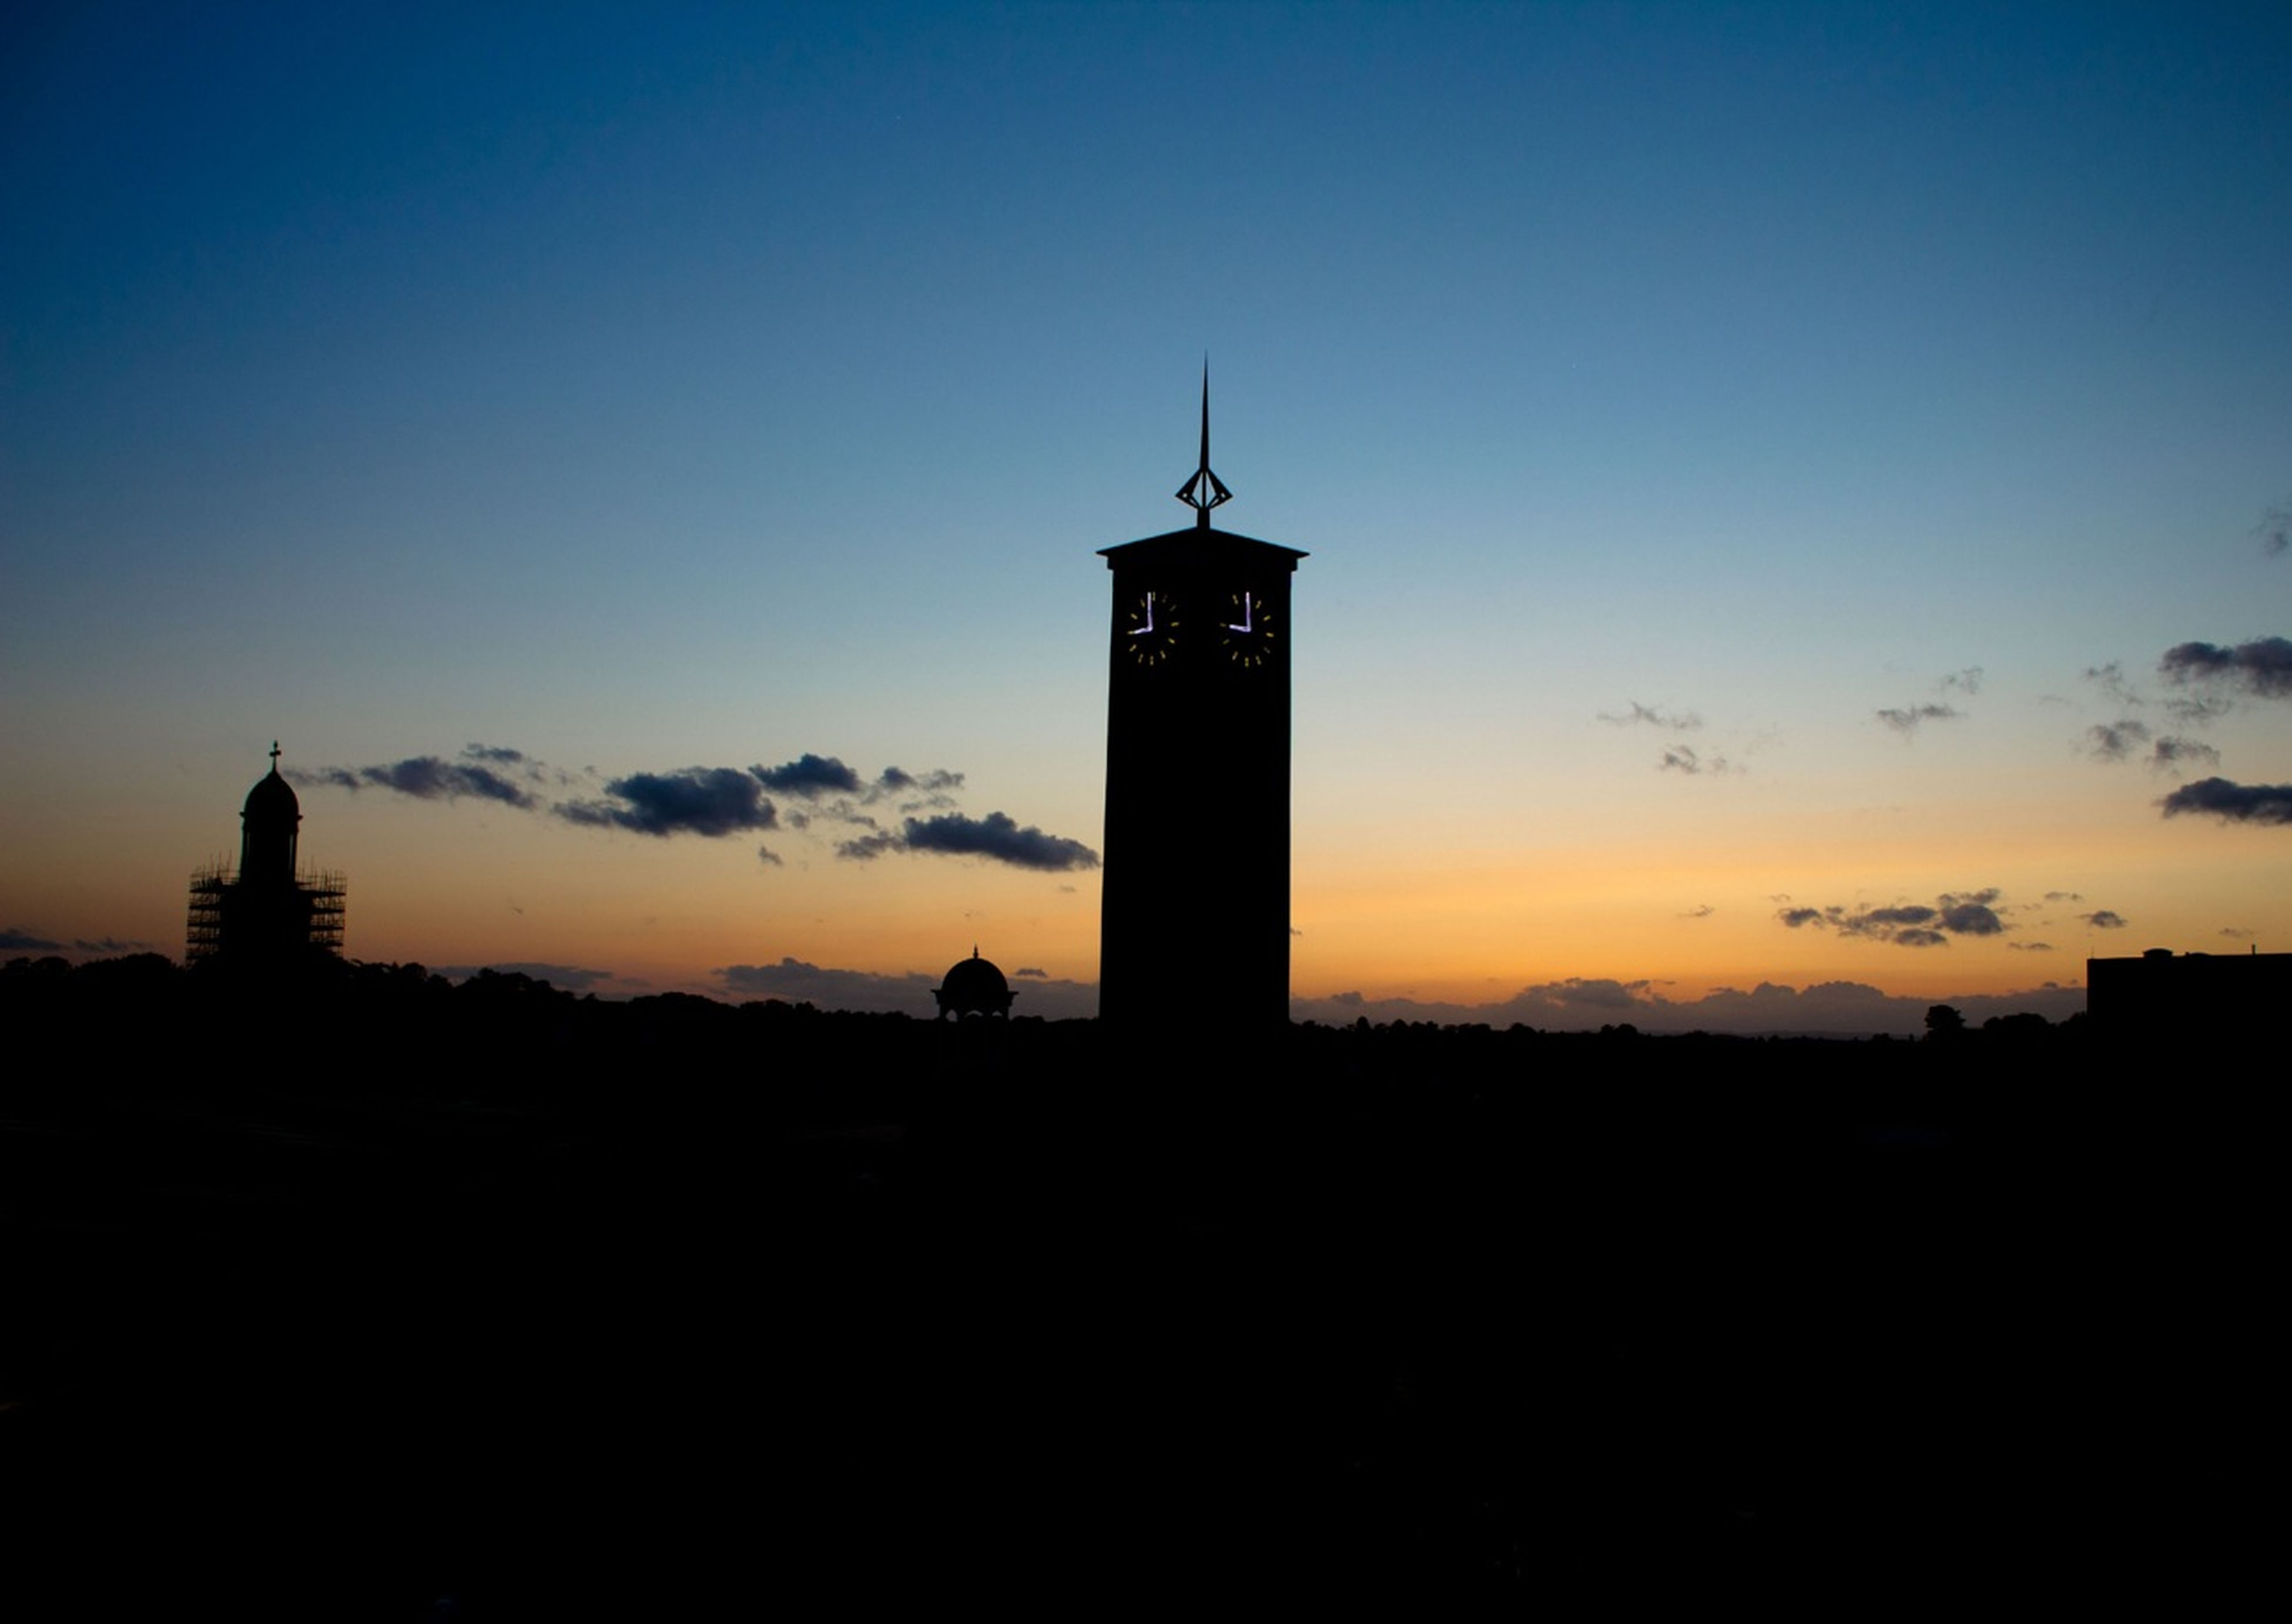 sunset, building exterior, silhouette, architecture, built structure, tower, copy space, sky, guidance, orange color, lighthouse, low angle view, blue, dusk, direction, no people, outdoors, clear sky, nature, scenics